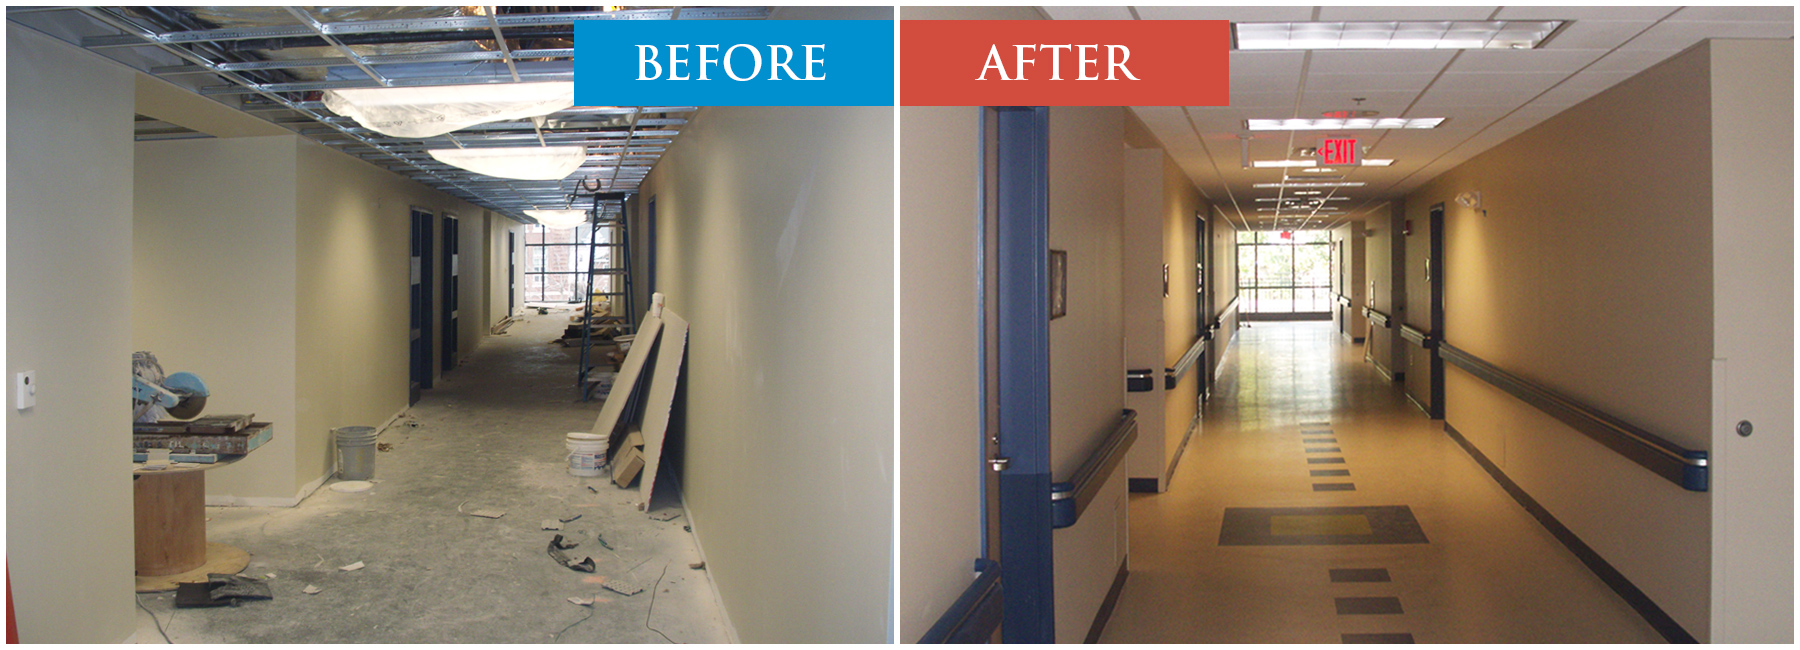 Hospital Interior Painting Services Boston, MA